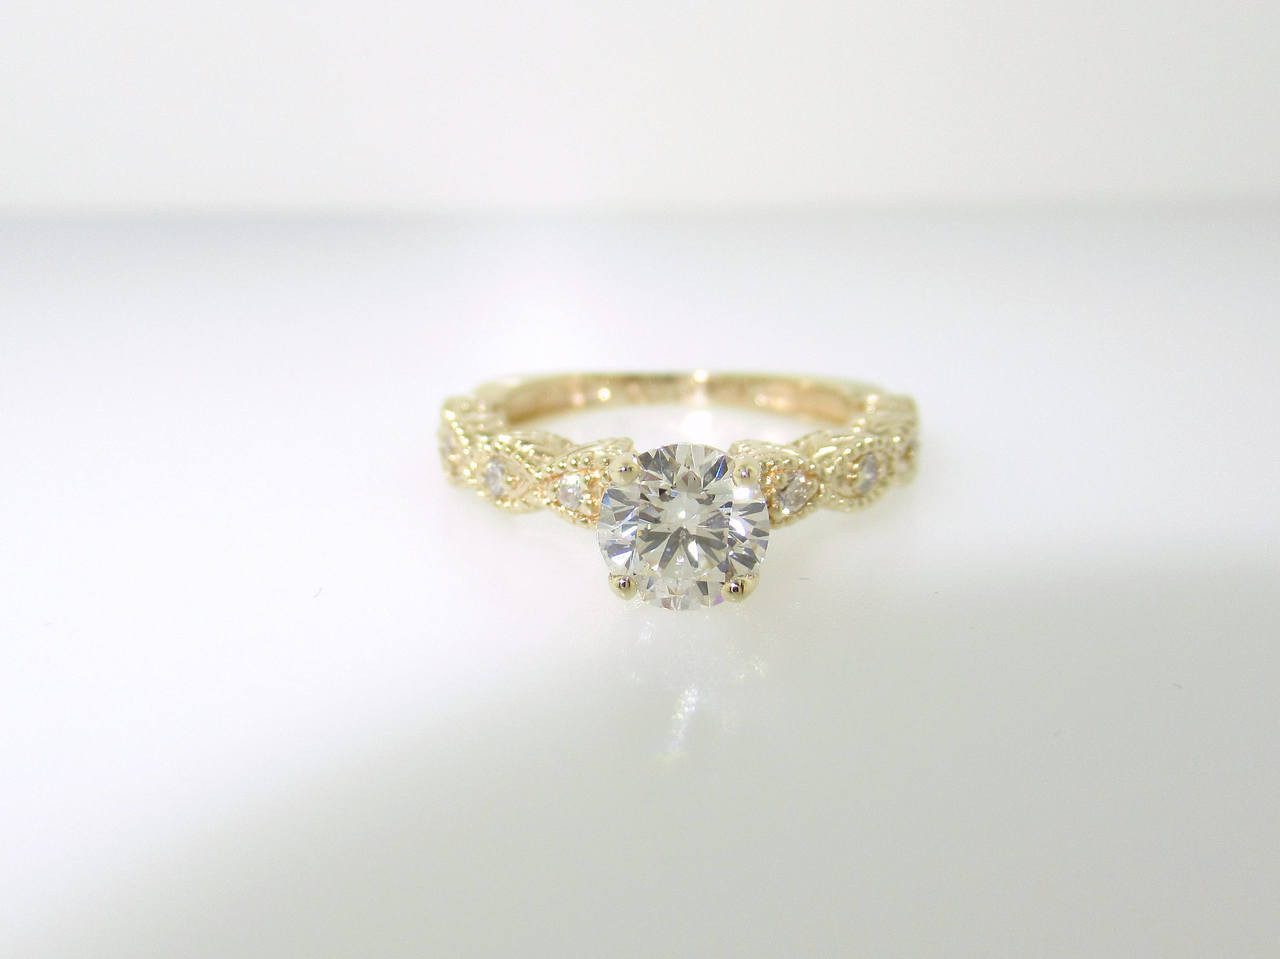 Vintage Engagement Ring Yellow Gold Diamond Engagement Ring Bridal Ring Vintage Wedding Ring 0 60 Carat Gia Certified Unique Handmade